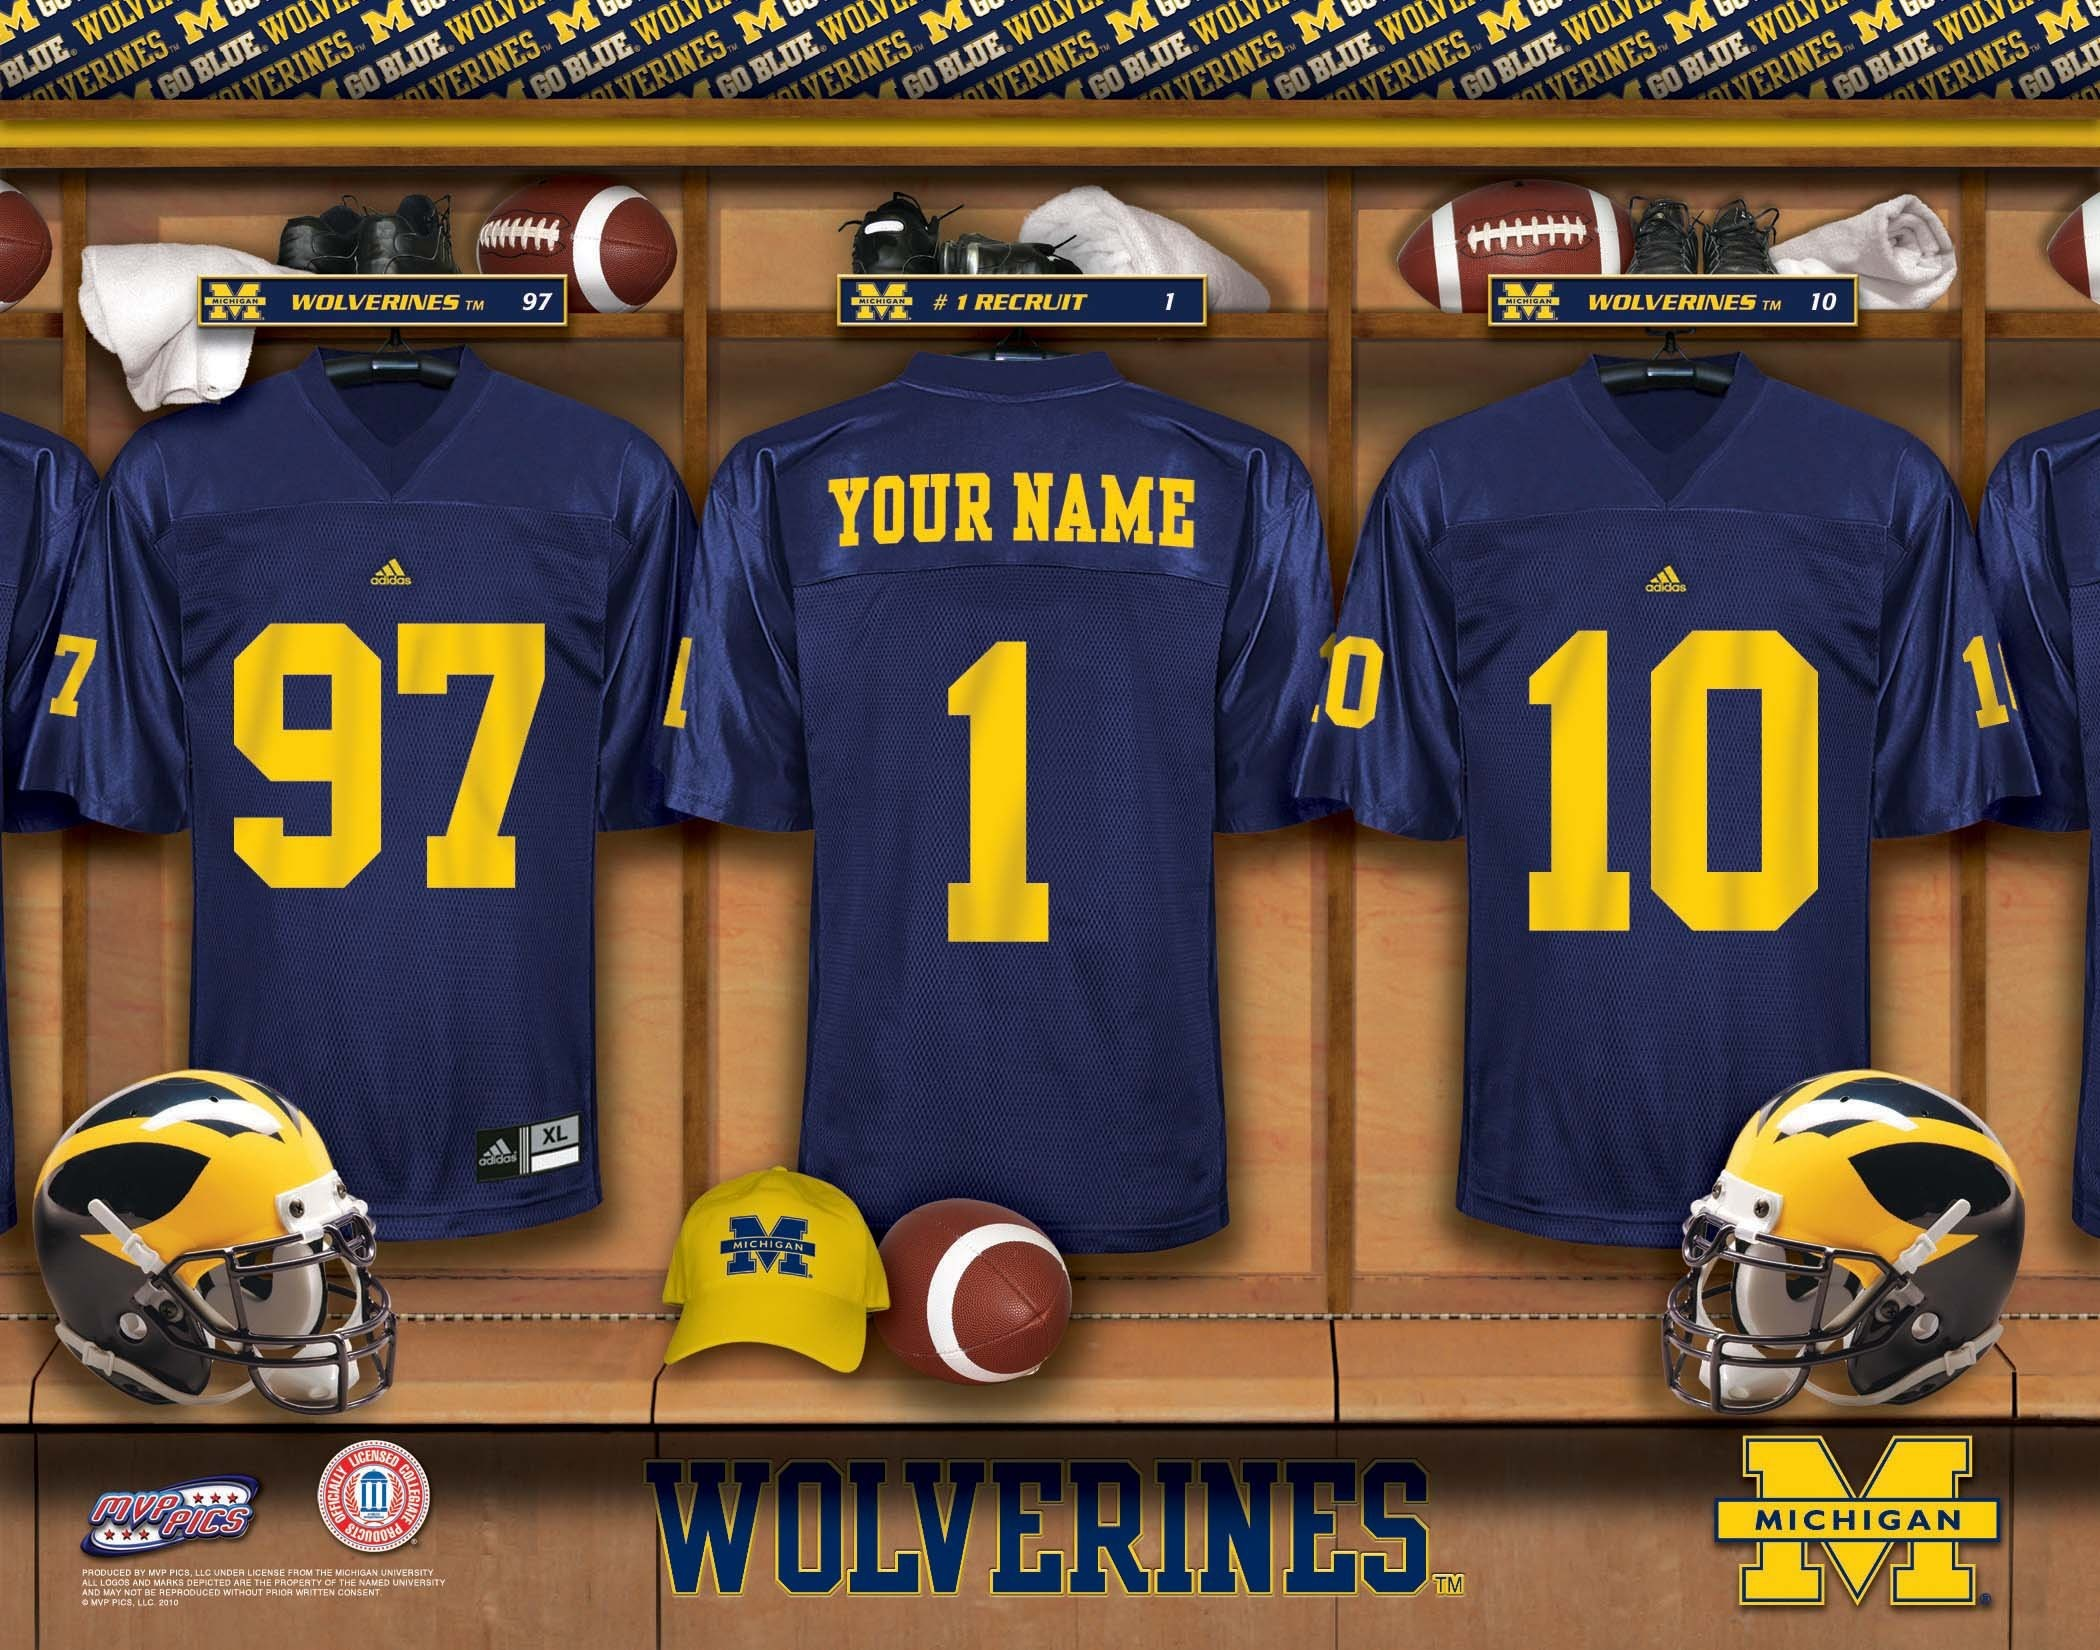 Michigan Wolverines Football Wallpapers Group